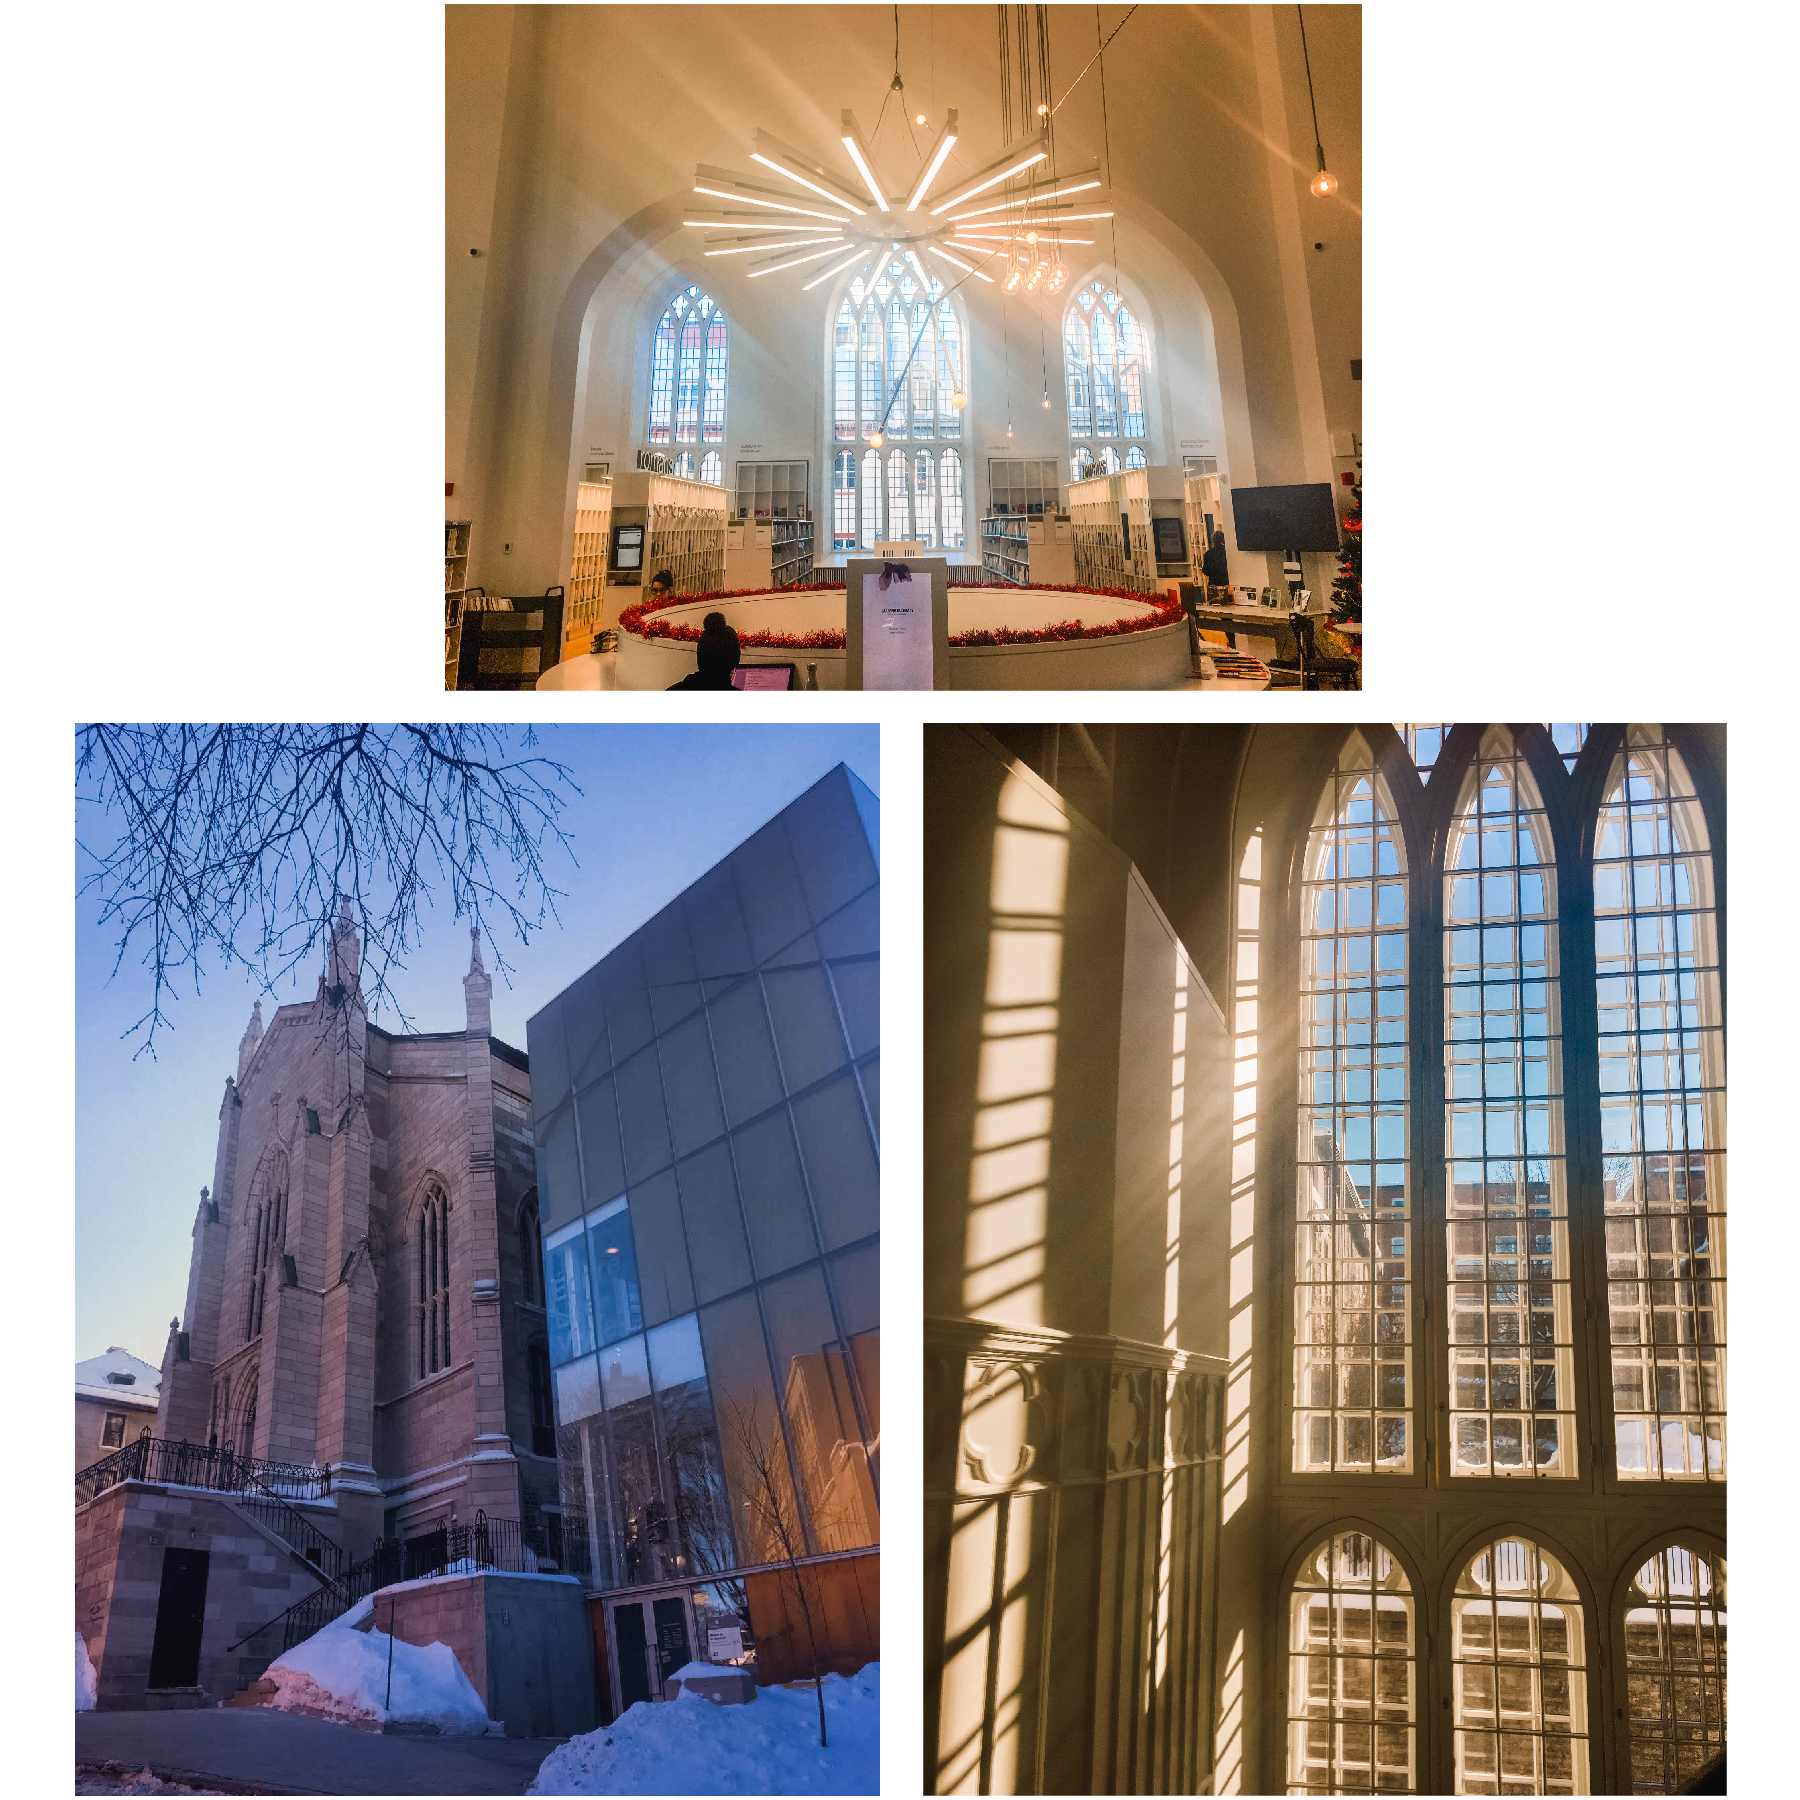 We went to Quebec City back in January for Mike's birthday. 🎉 It was gorgeous and freezing. 🥶 We took refuge in the Maison de la Littérature; an old church turned library. ⛪️ Jesum croe it was incredible. 📚 The natural light ☀️ and way they honored the form of the church was perfect. I'm in love.